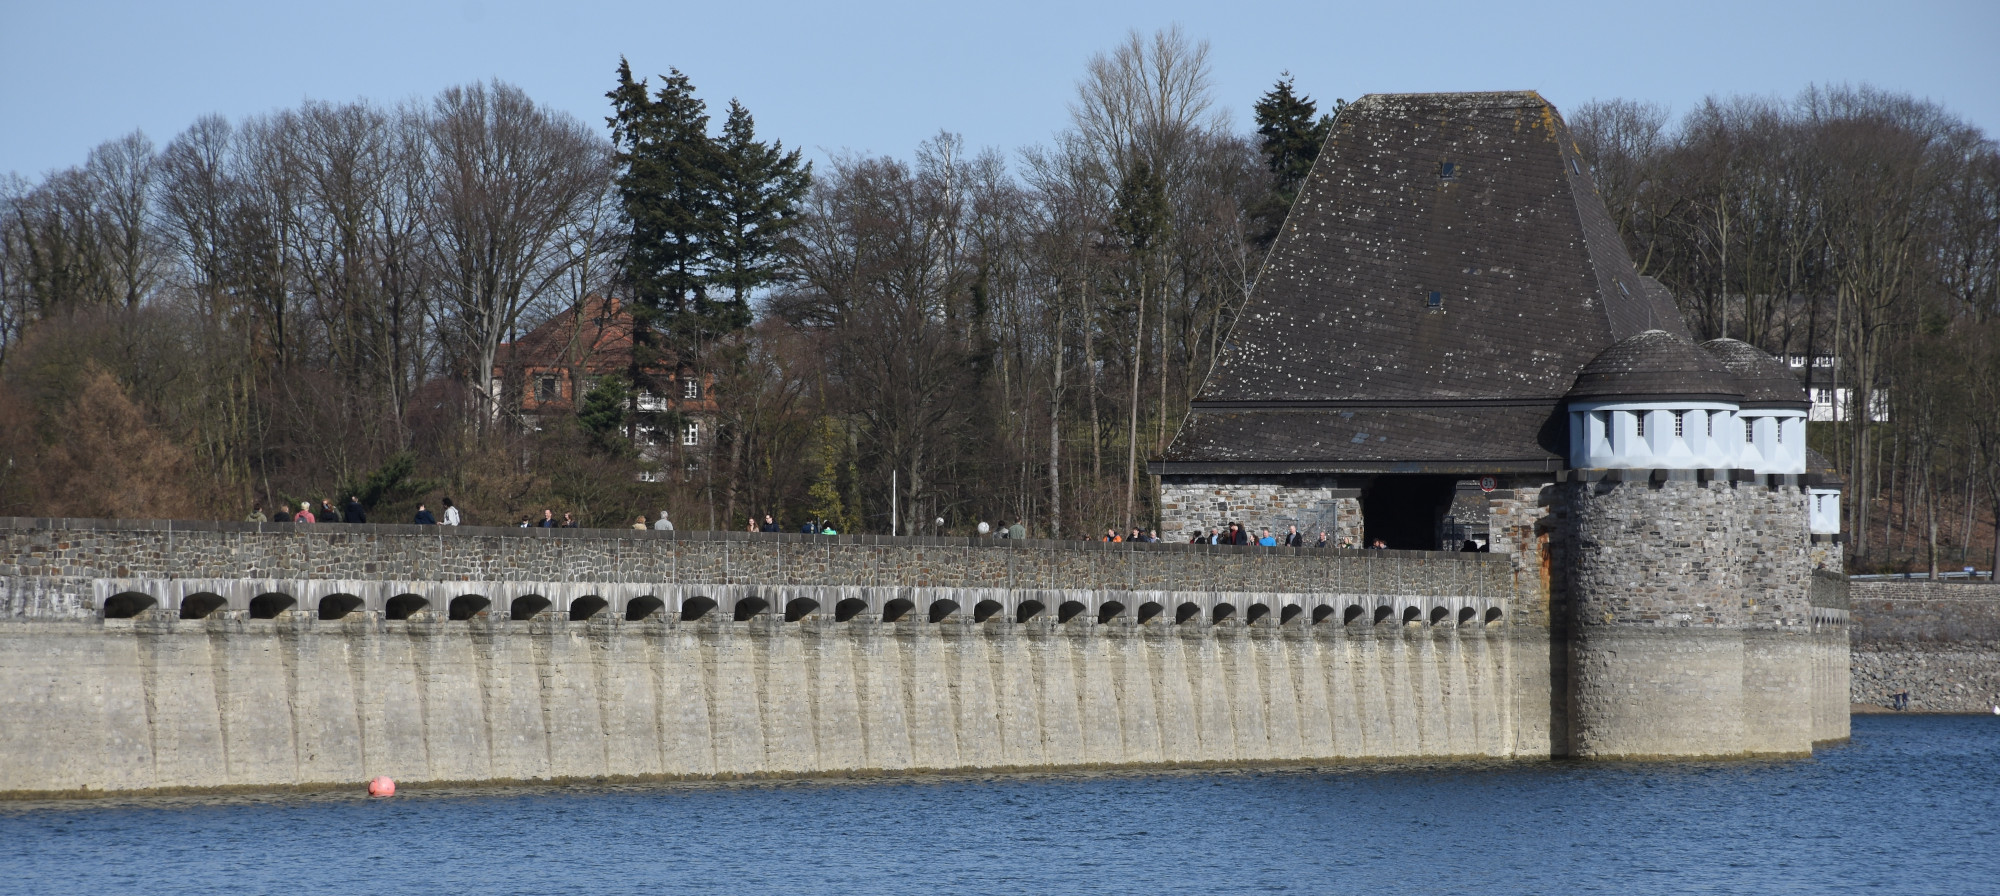 Dam of the Möhne Reservoir